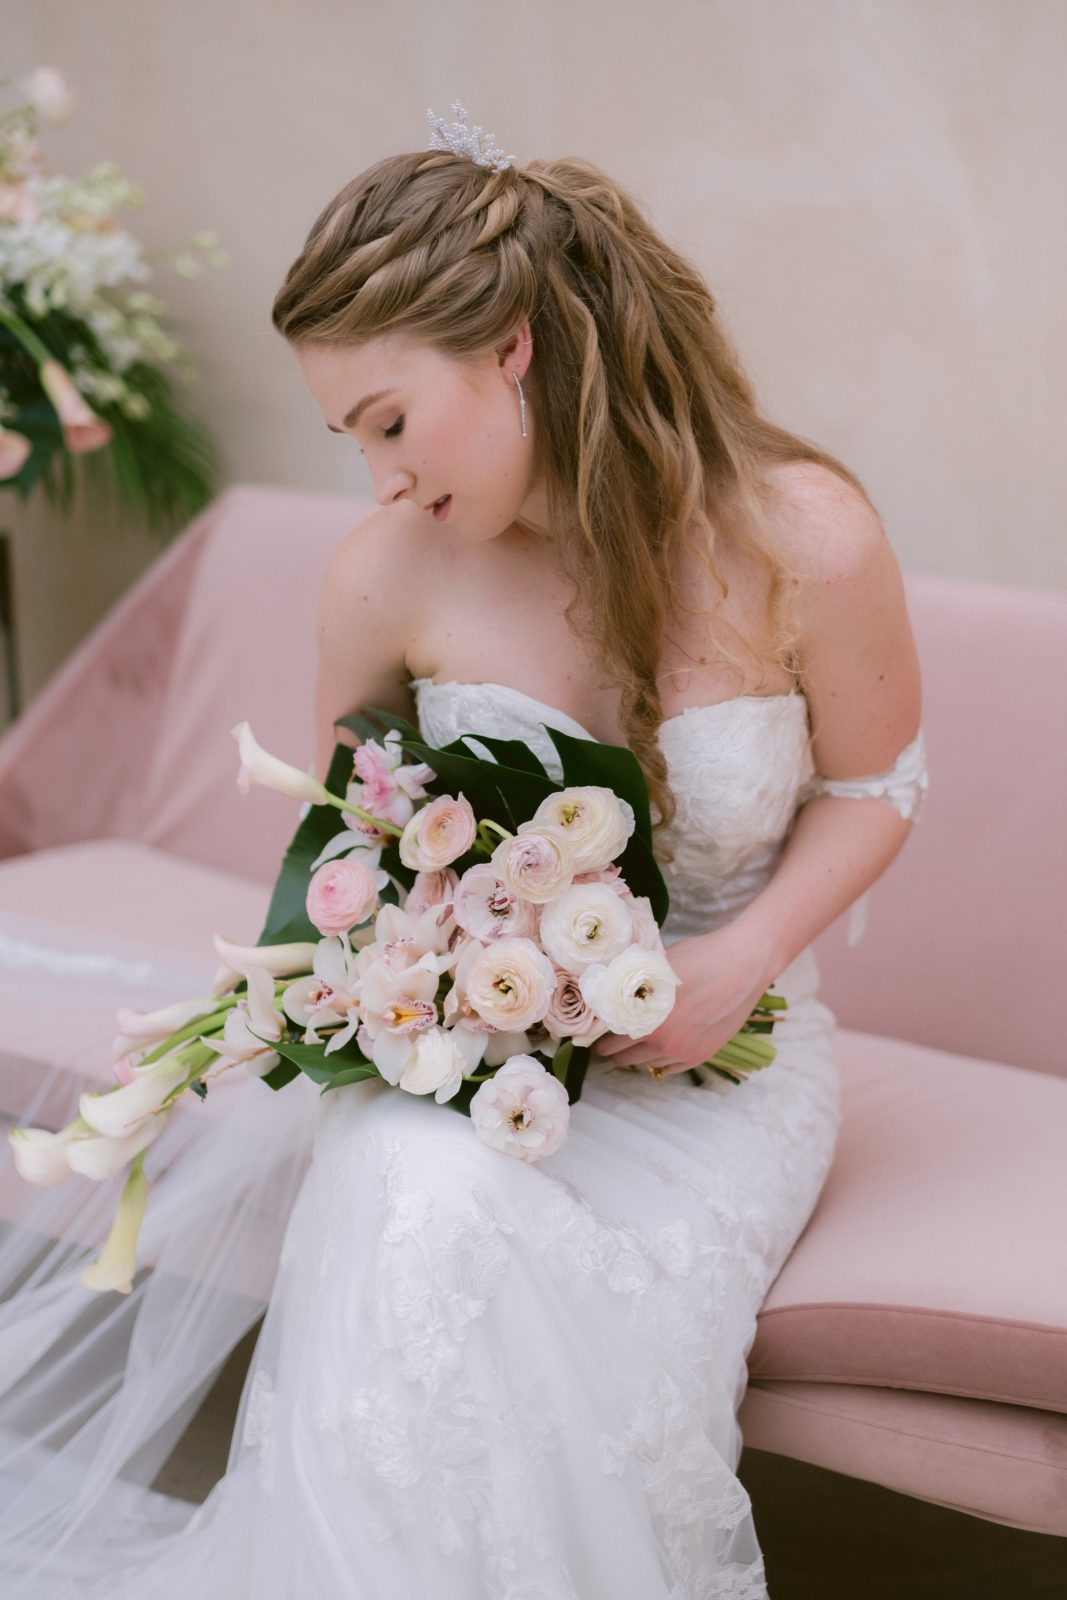 Bride posing with light pink bouquet